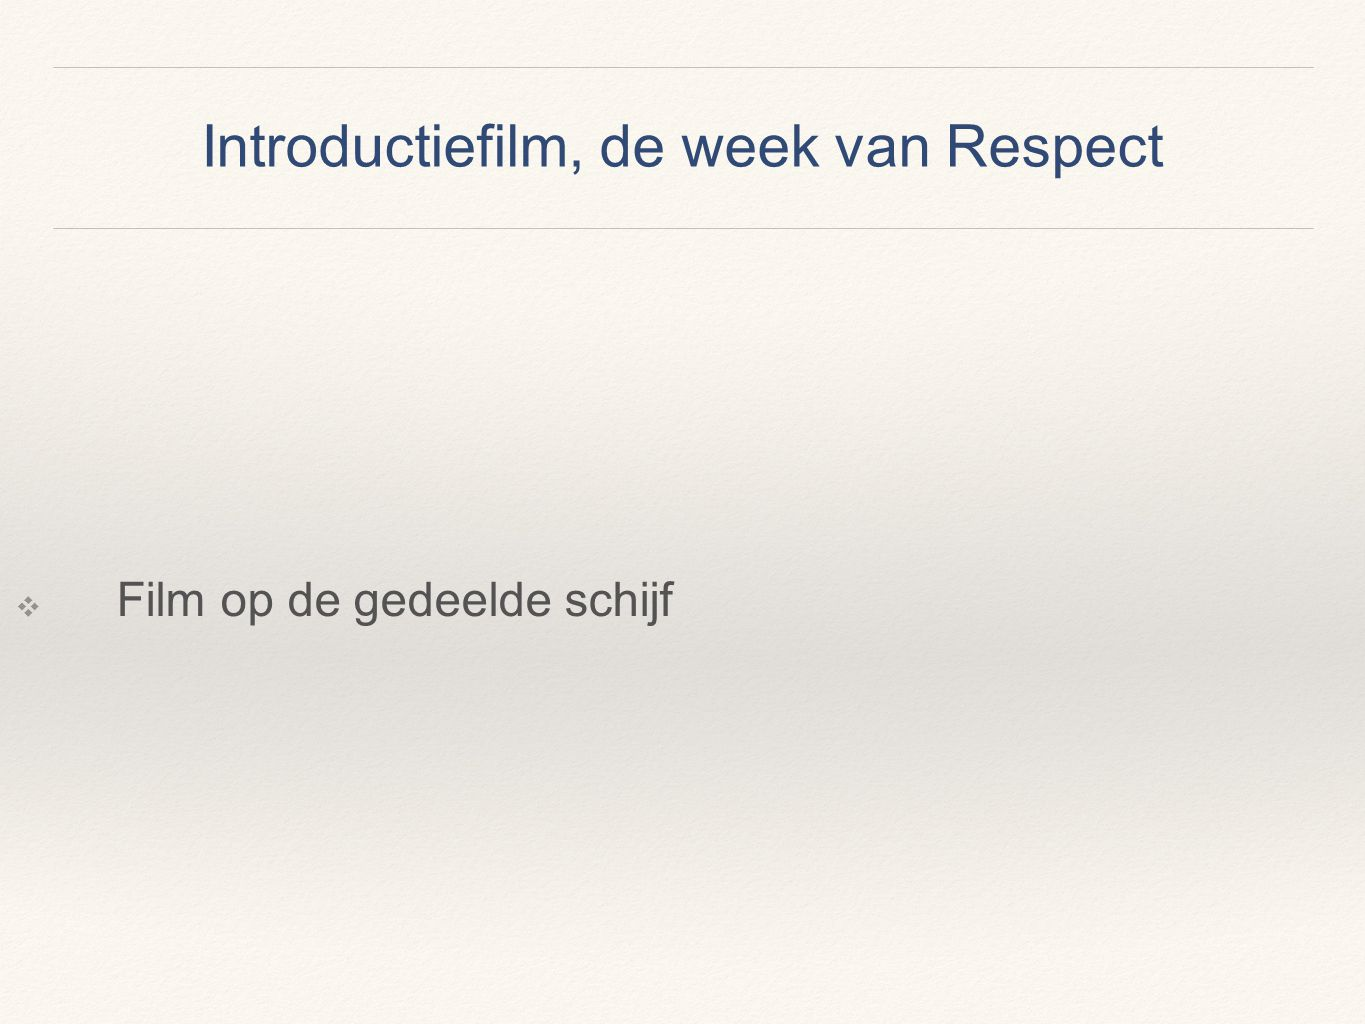 Introductiefilm, de week van Respect